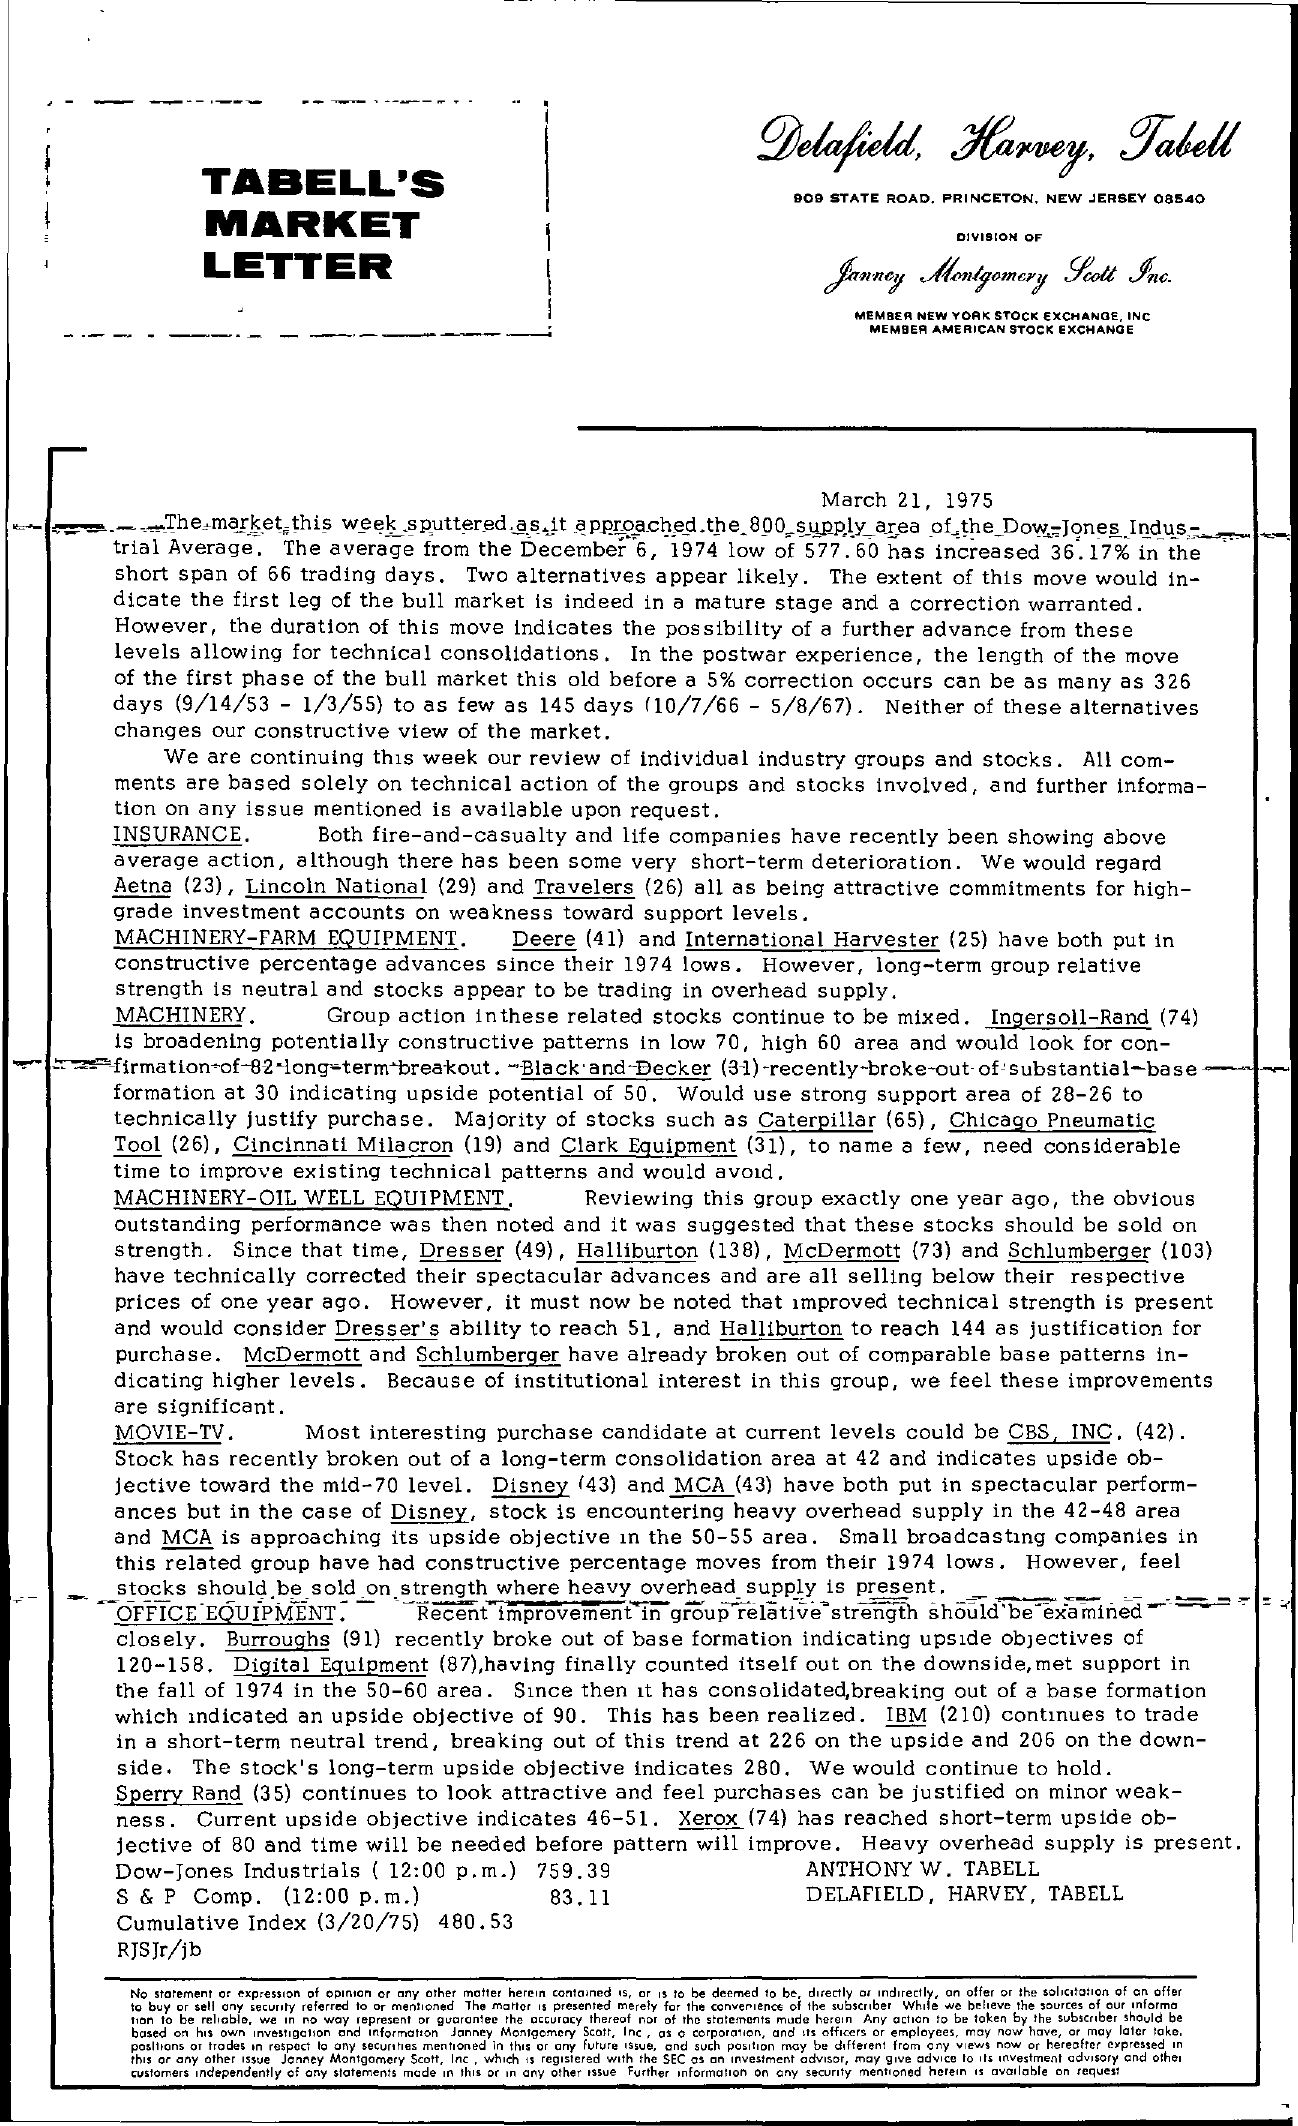 Tabell's Market Letter - March 21, 1975